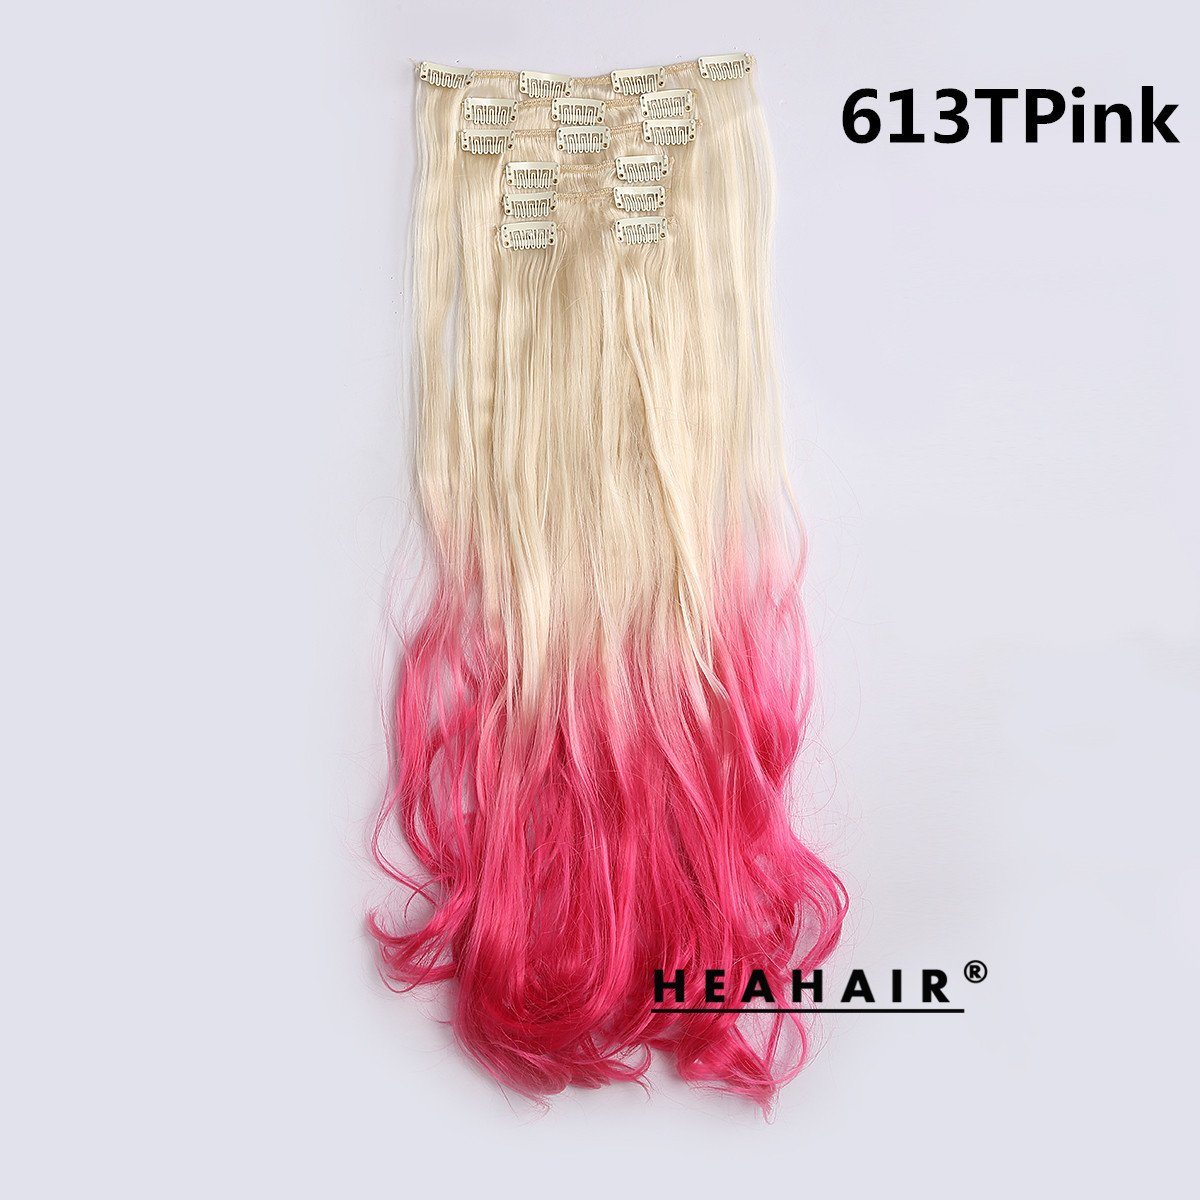 Amazon heahair light blonde to 613t pink ombre synthetic amazon heahair light blonde to 613t pink ombre synthetic curly clip in hair extensions for cosplay beauty pmusecretfo Images